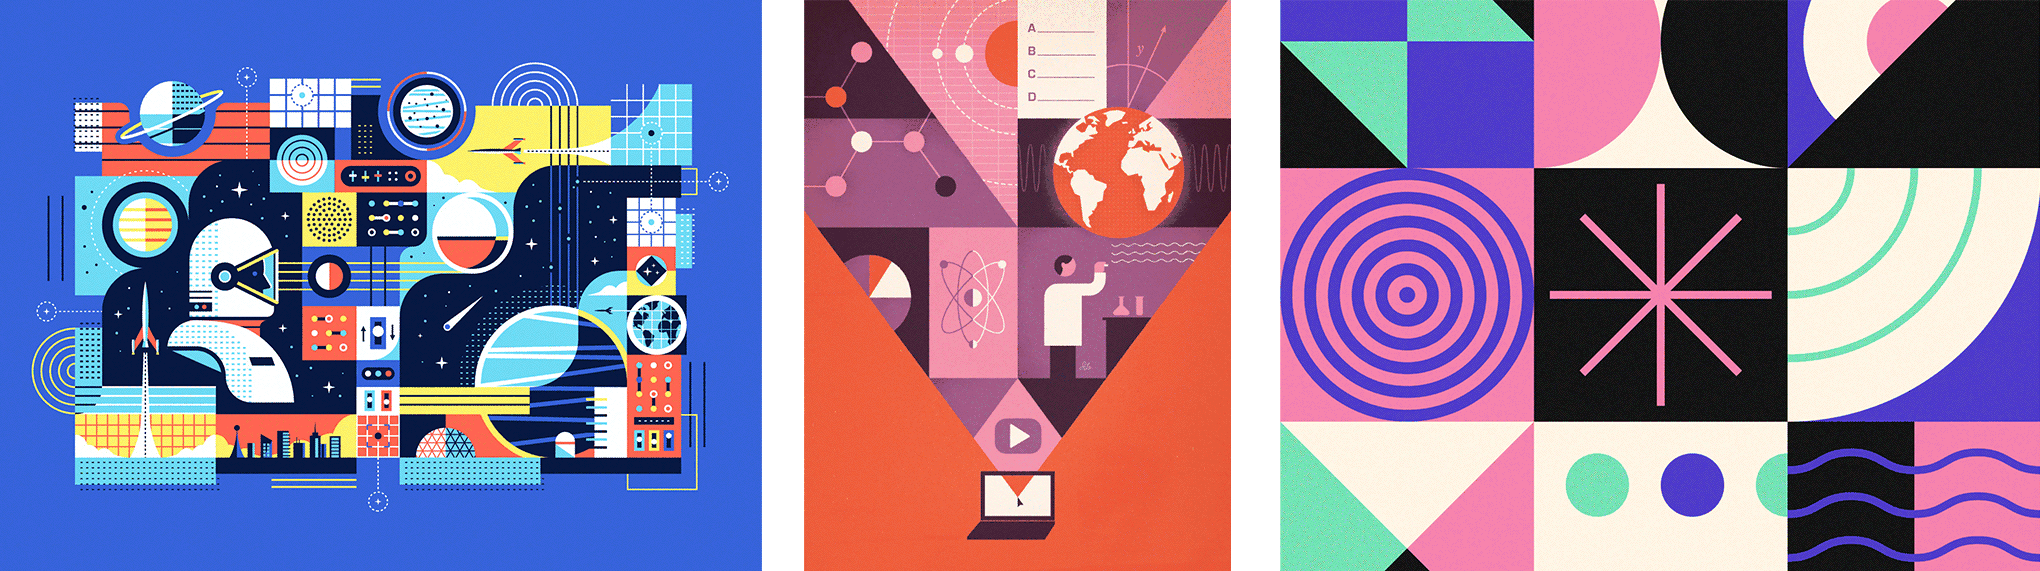 Inspired by 'Space is the Place' by Matt Carlson, an illustration from Jesse Lefkowitz.com, and a cool pattern illustration by Rogie